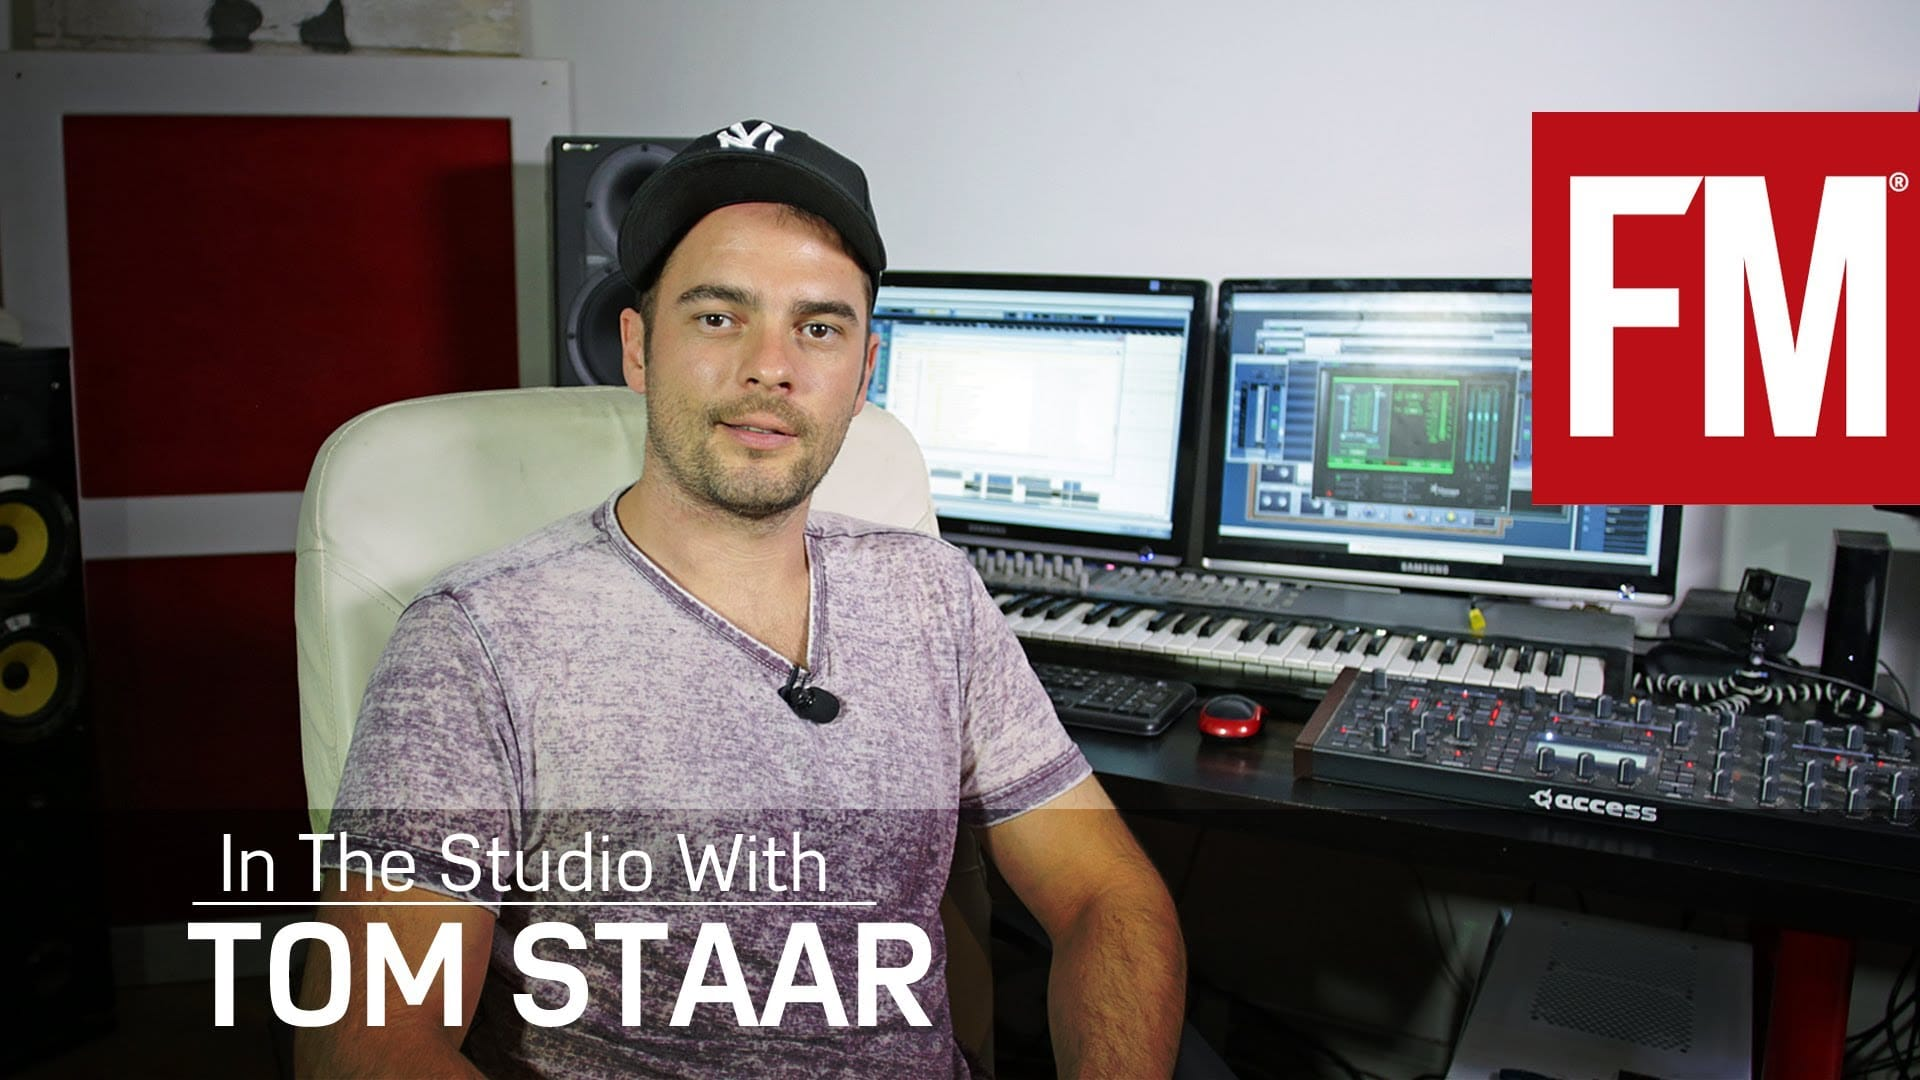 Tom Staar In The Studio With Future Music – YouTube